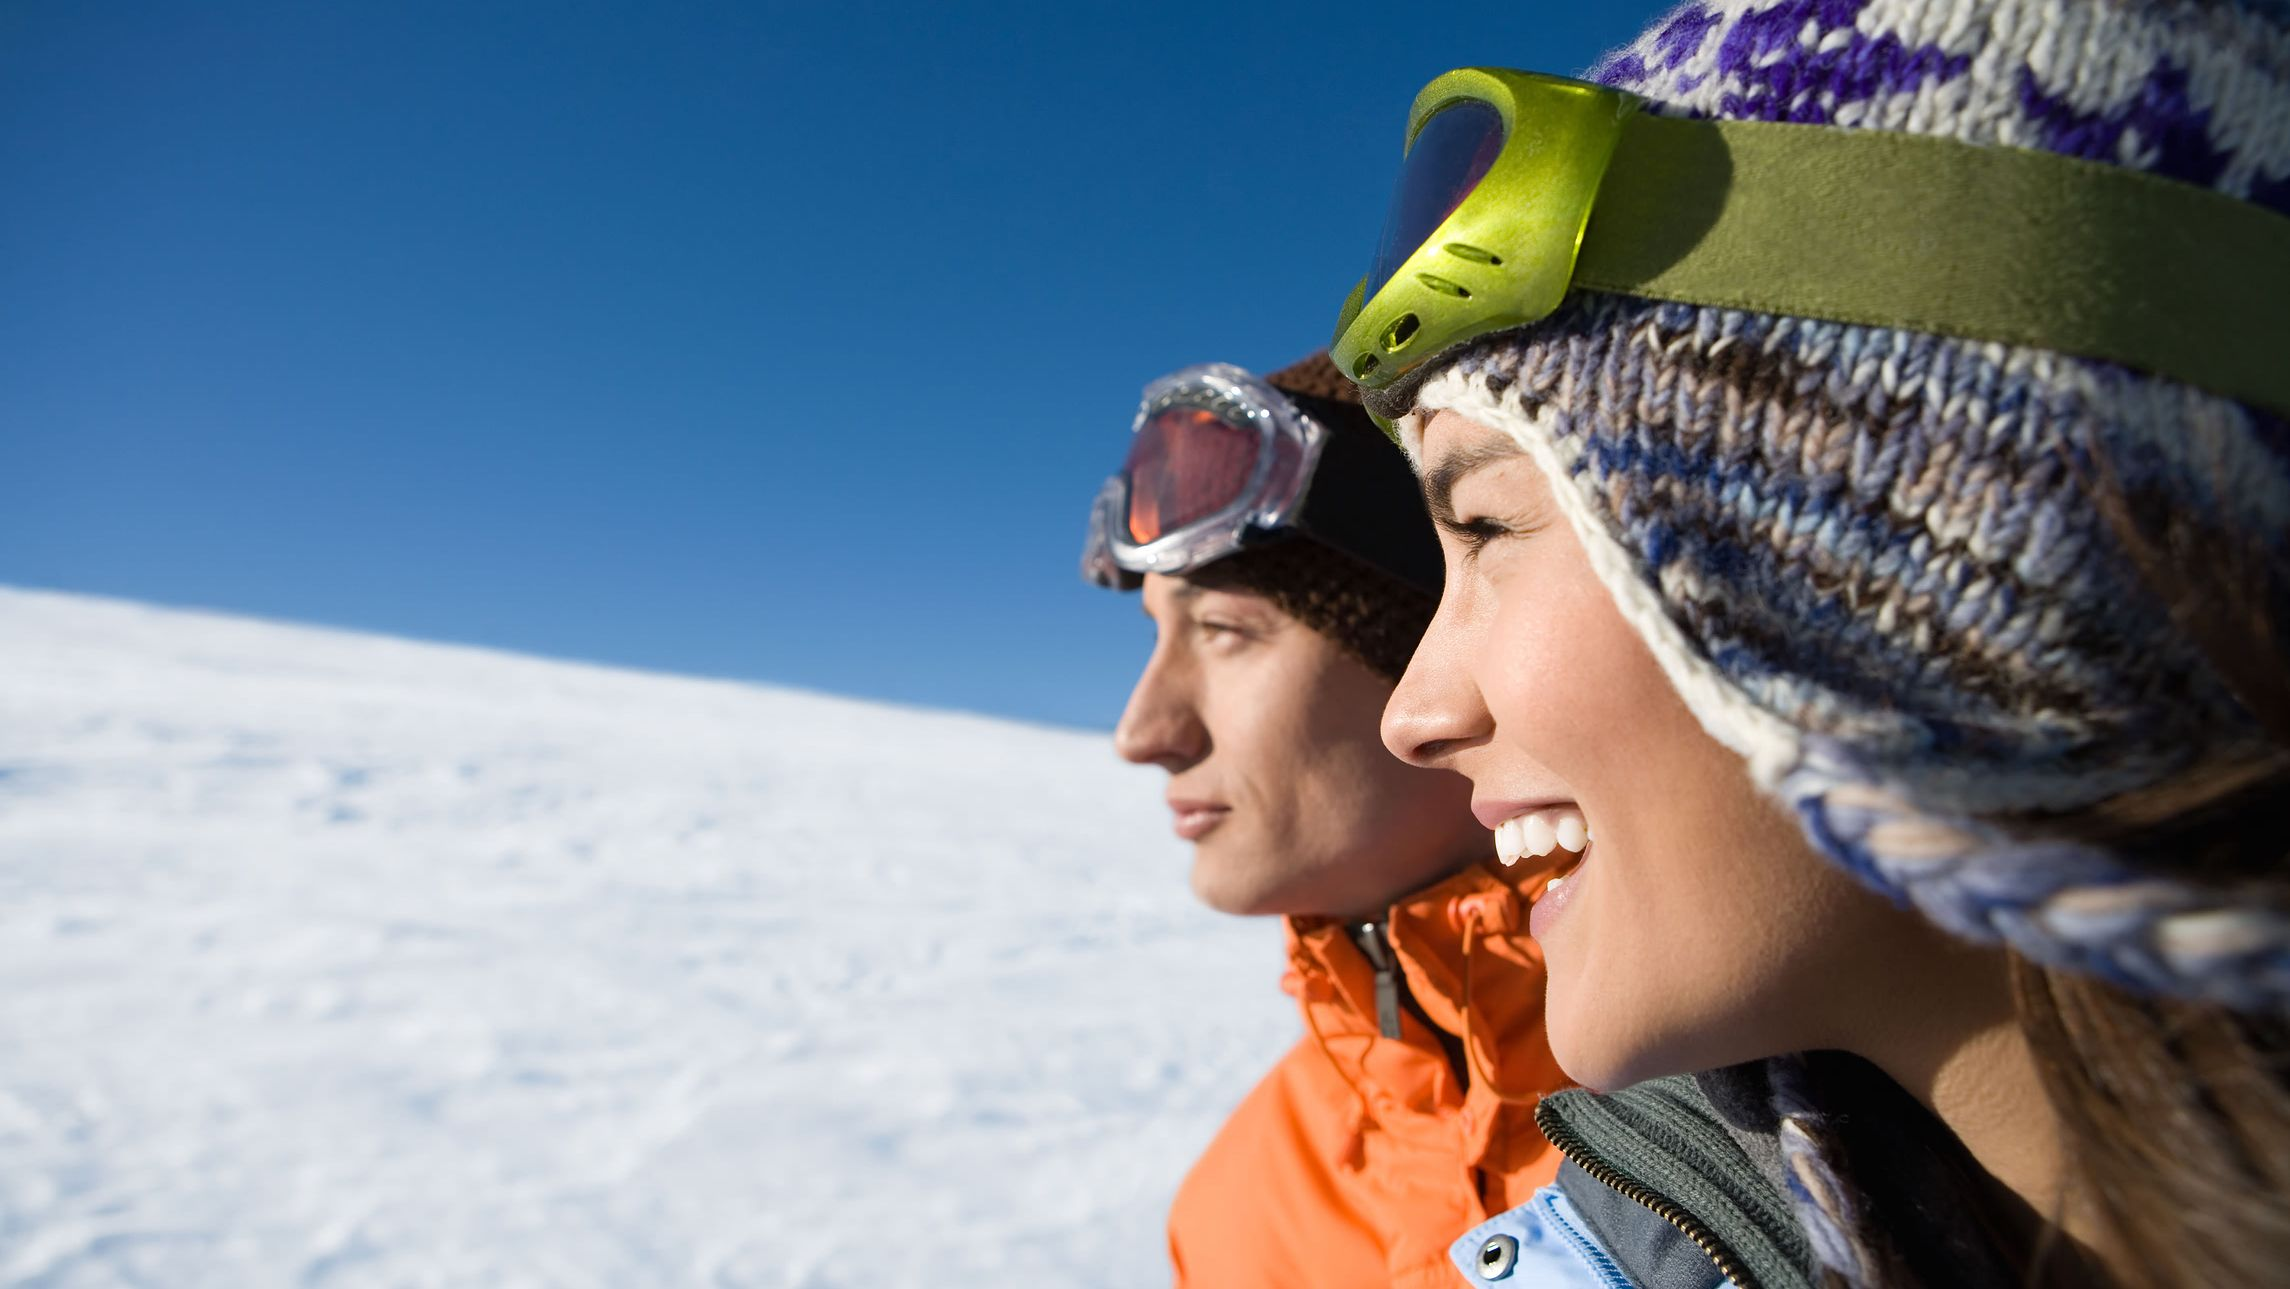 Two snowboarders on a mountain